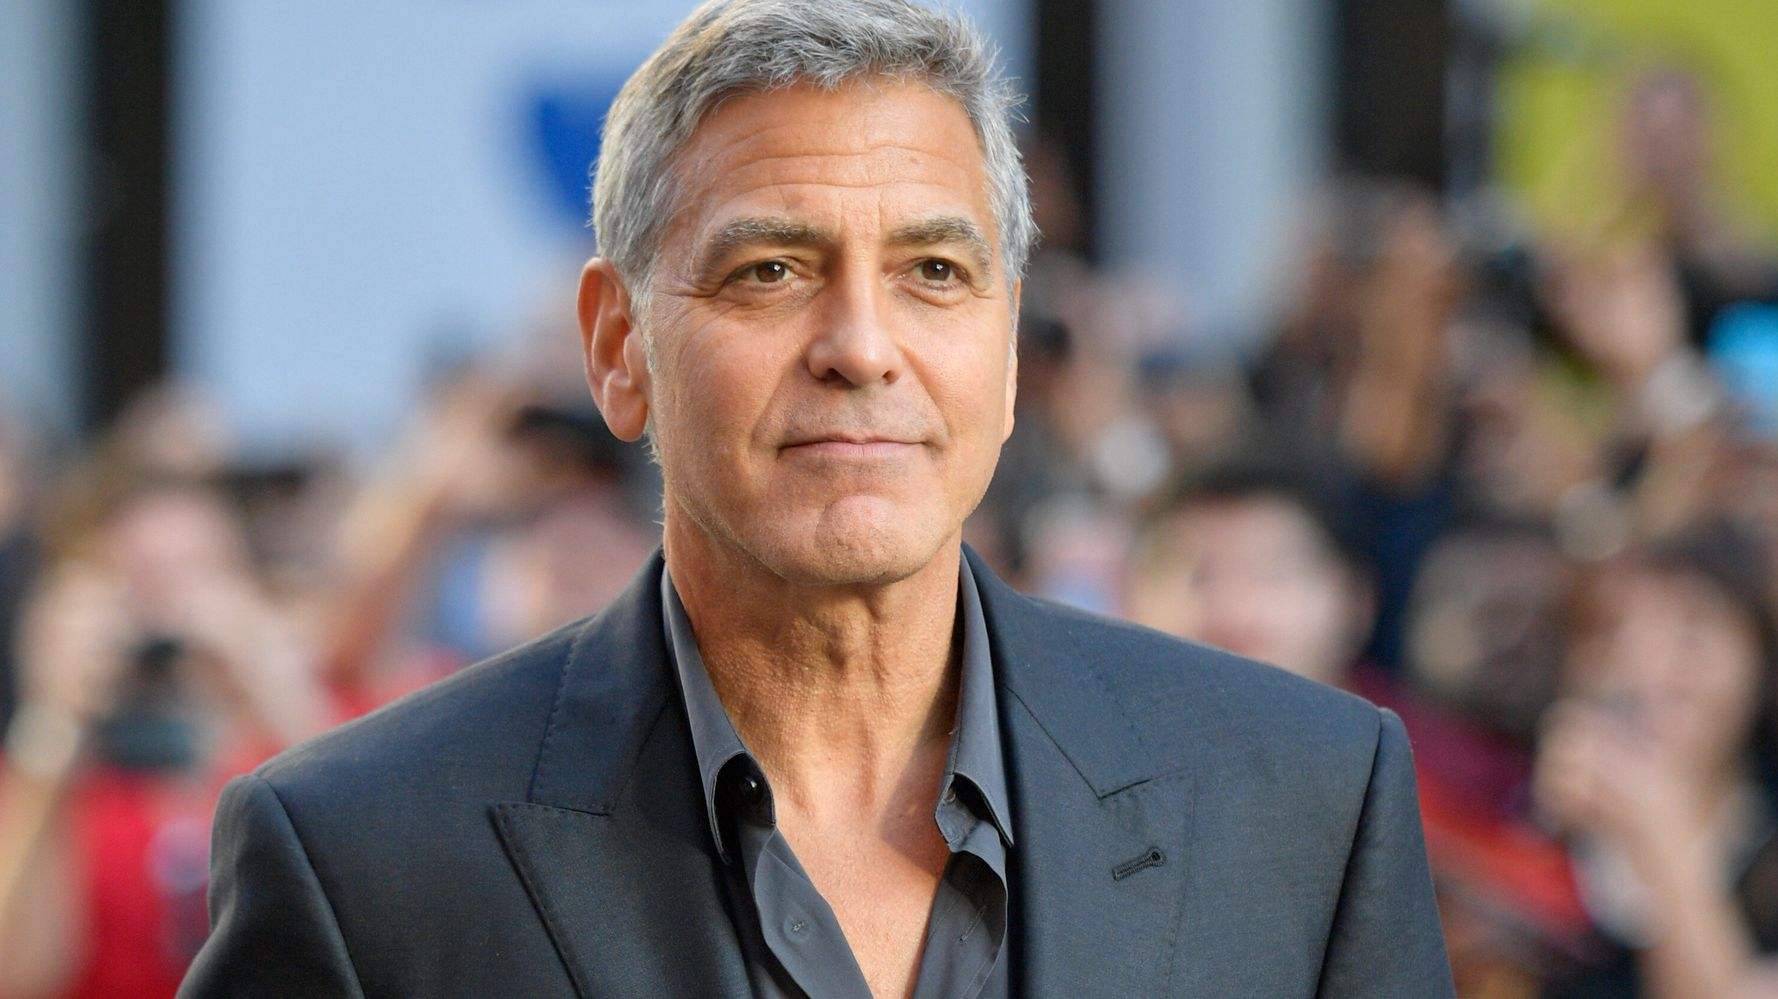 George Clooney Talks About Near-Fatal Motorcycle Crash That Left Him 'Screaming'